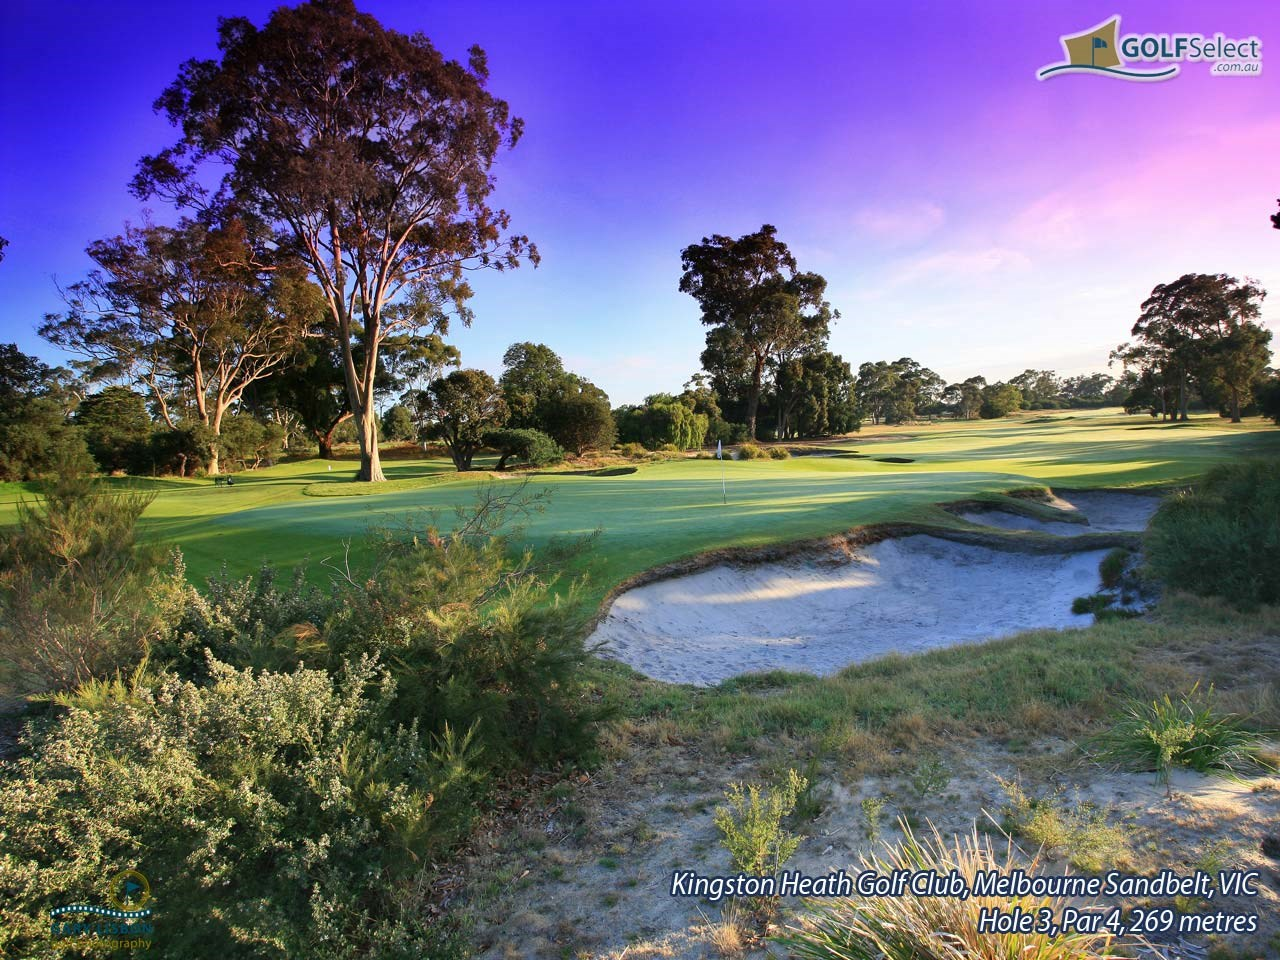 Kingston Heath Golf Club Hole 3, Par 4, 279 metres